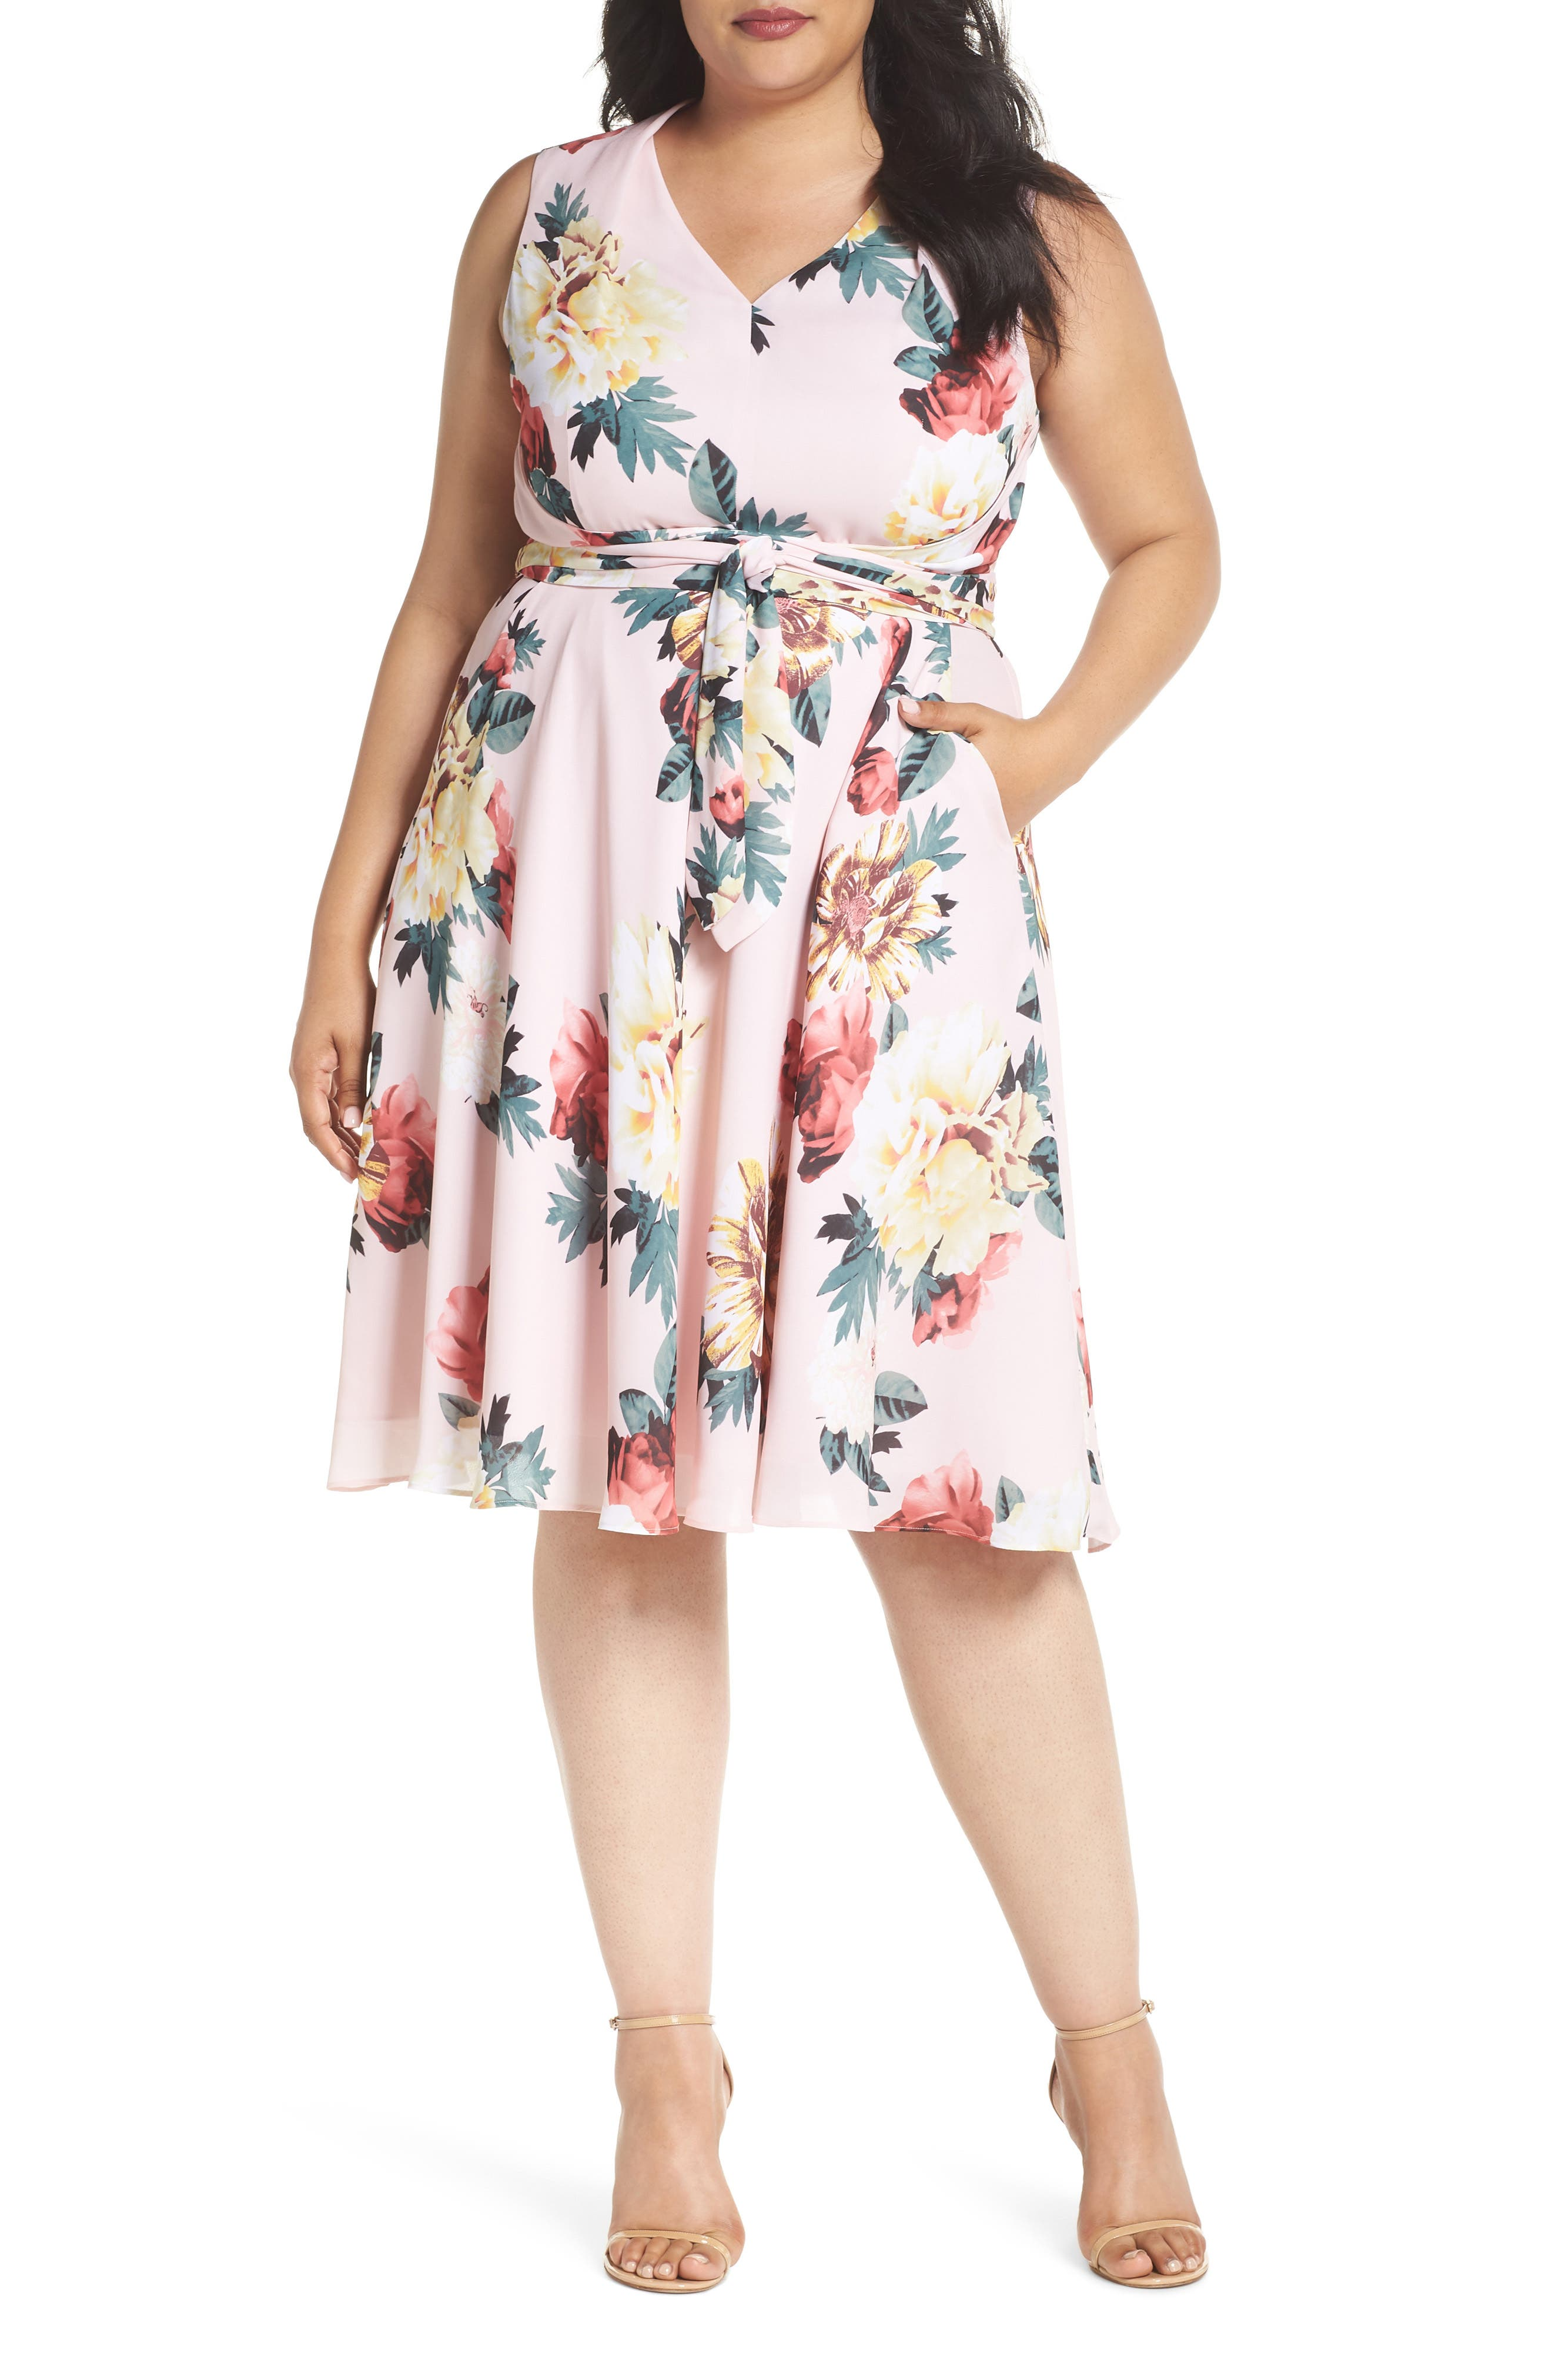 Floral Print Tie Waist Fit & Flare Dress,                             Main thumbnail 1, color,                             Blush/ Lemon/ Coral